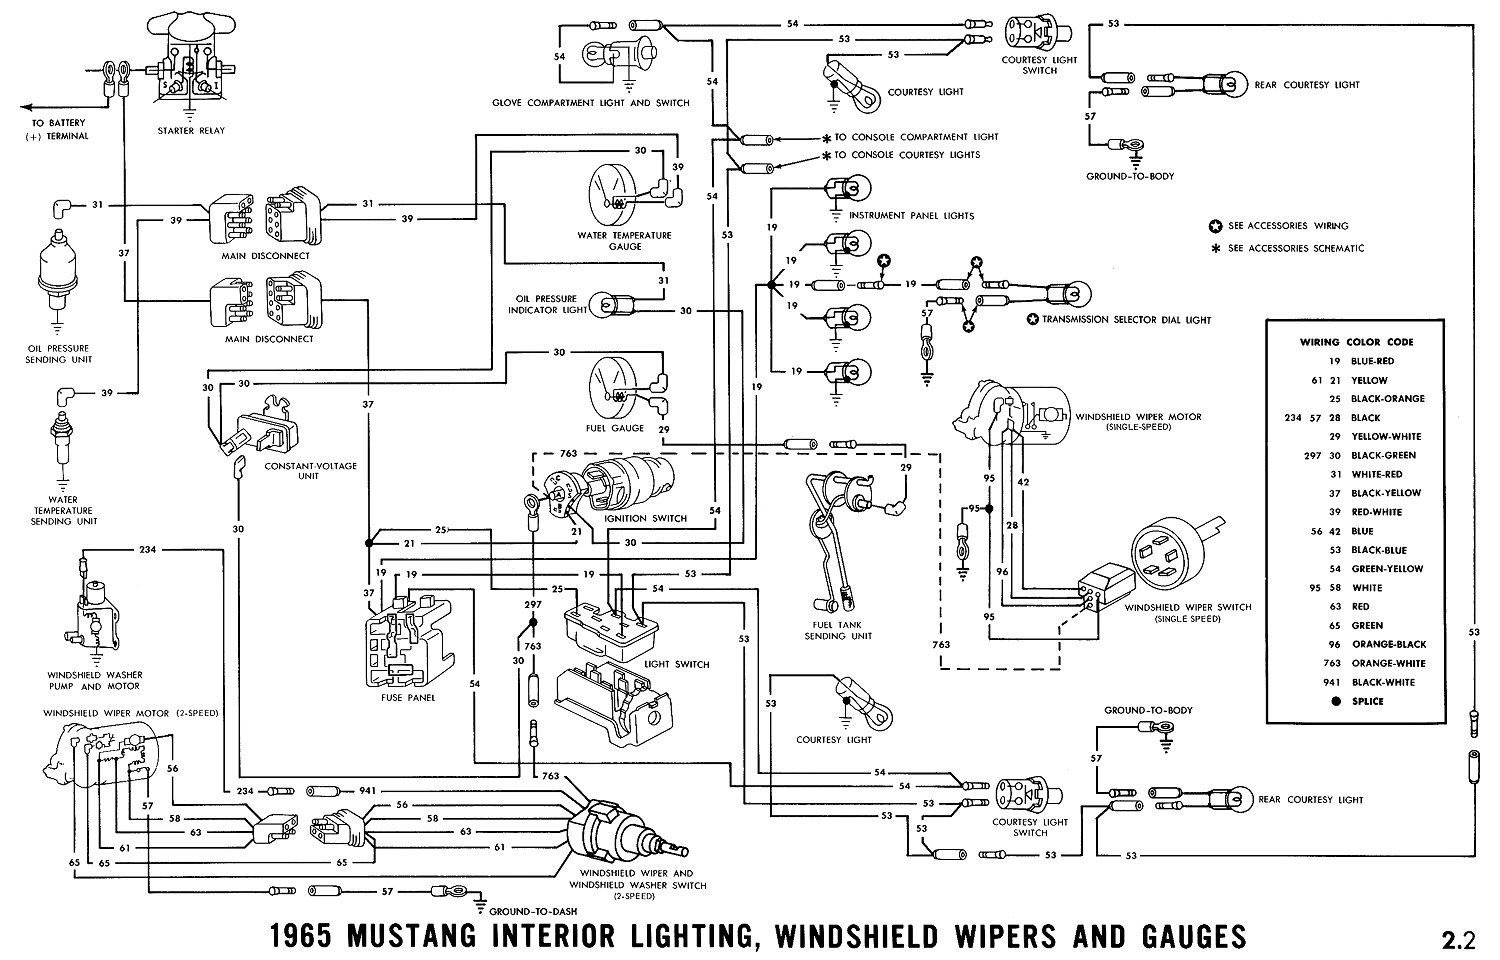 1965g 1965 mustang wiring diagram 1965 lincoln wiring diagram \u2022 wiring 1965 mustang wiring diagram free at honlapkeszites.co